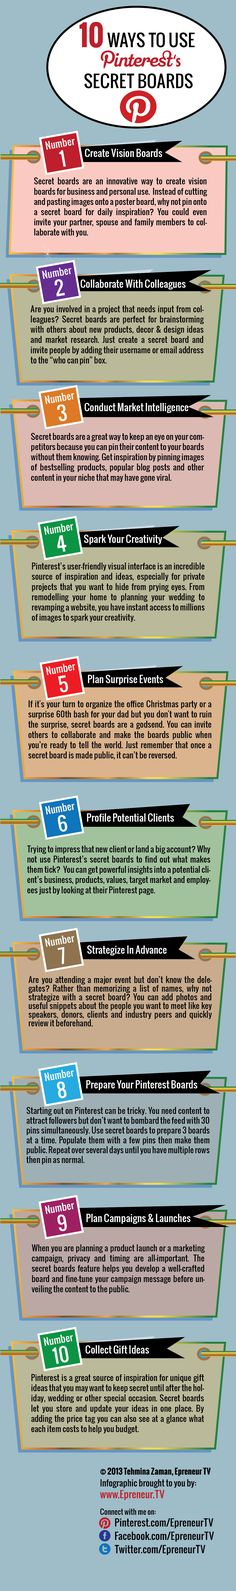 Well laid out infographic showing 10 ways to use (up to 6 now) Pinterest secret boards from @Y Wilson TV